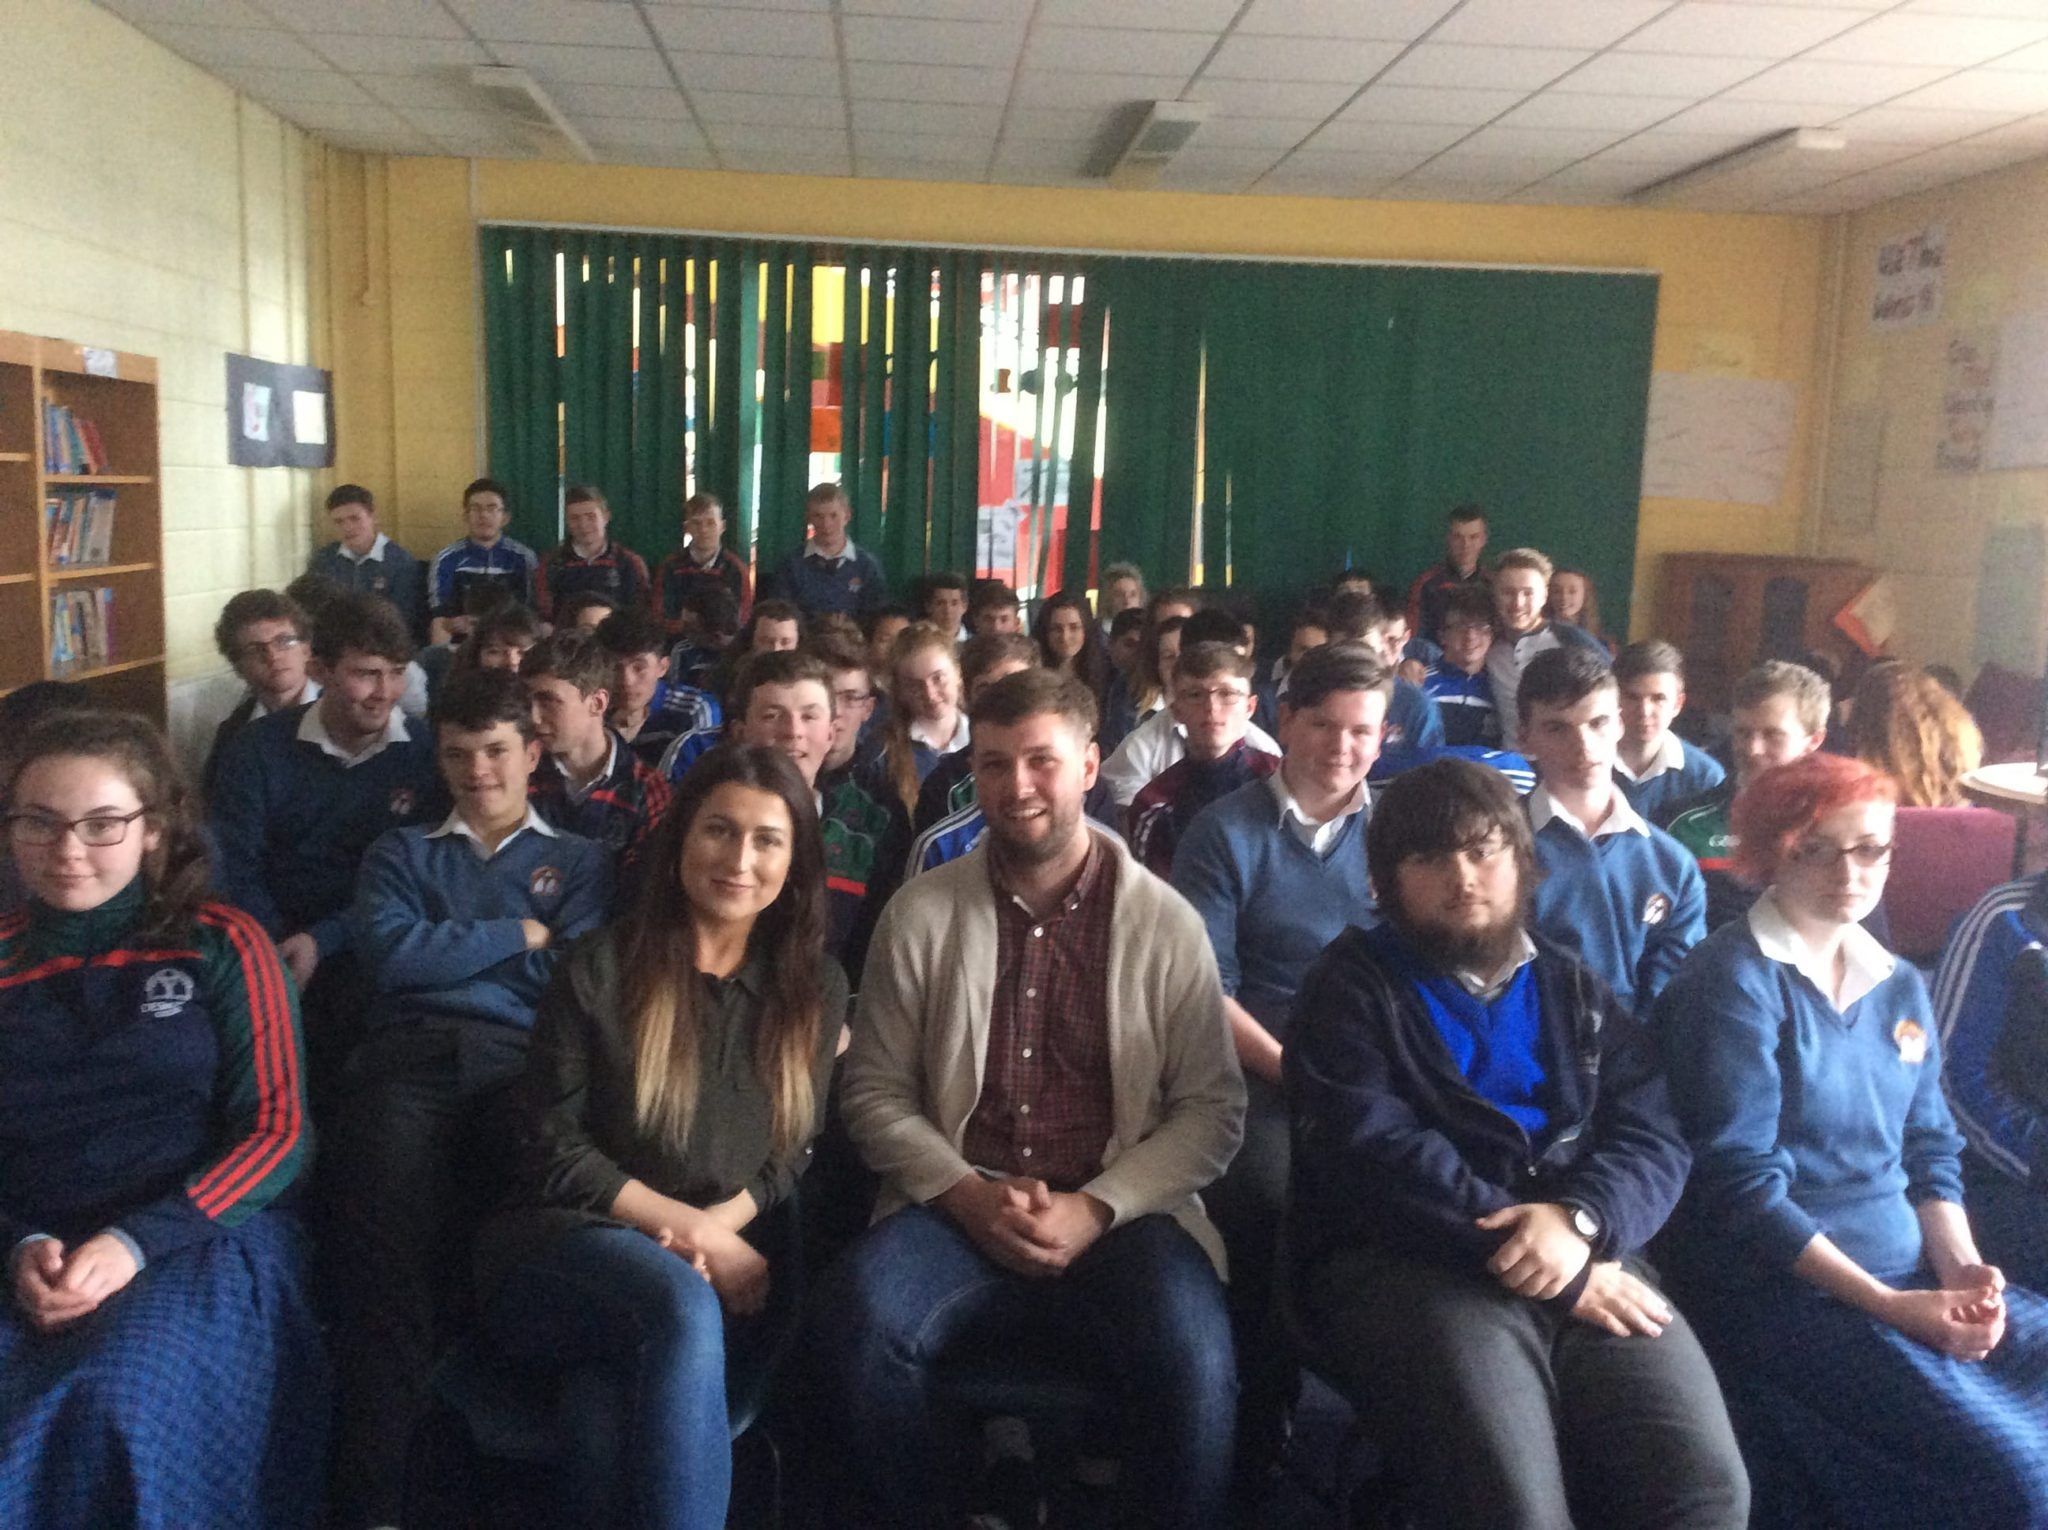 25th May 2016: Desmond College 5th year students listening to a talk about mental health from  Caolan (UL student welfare officer) and Claire.